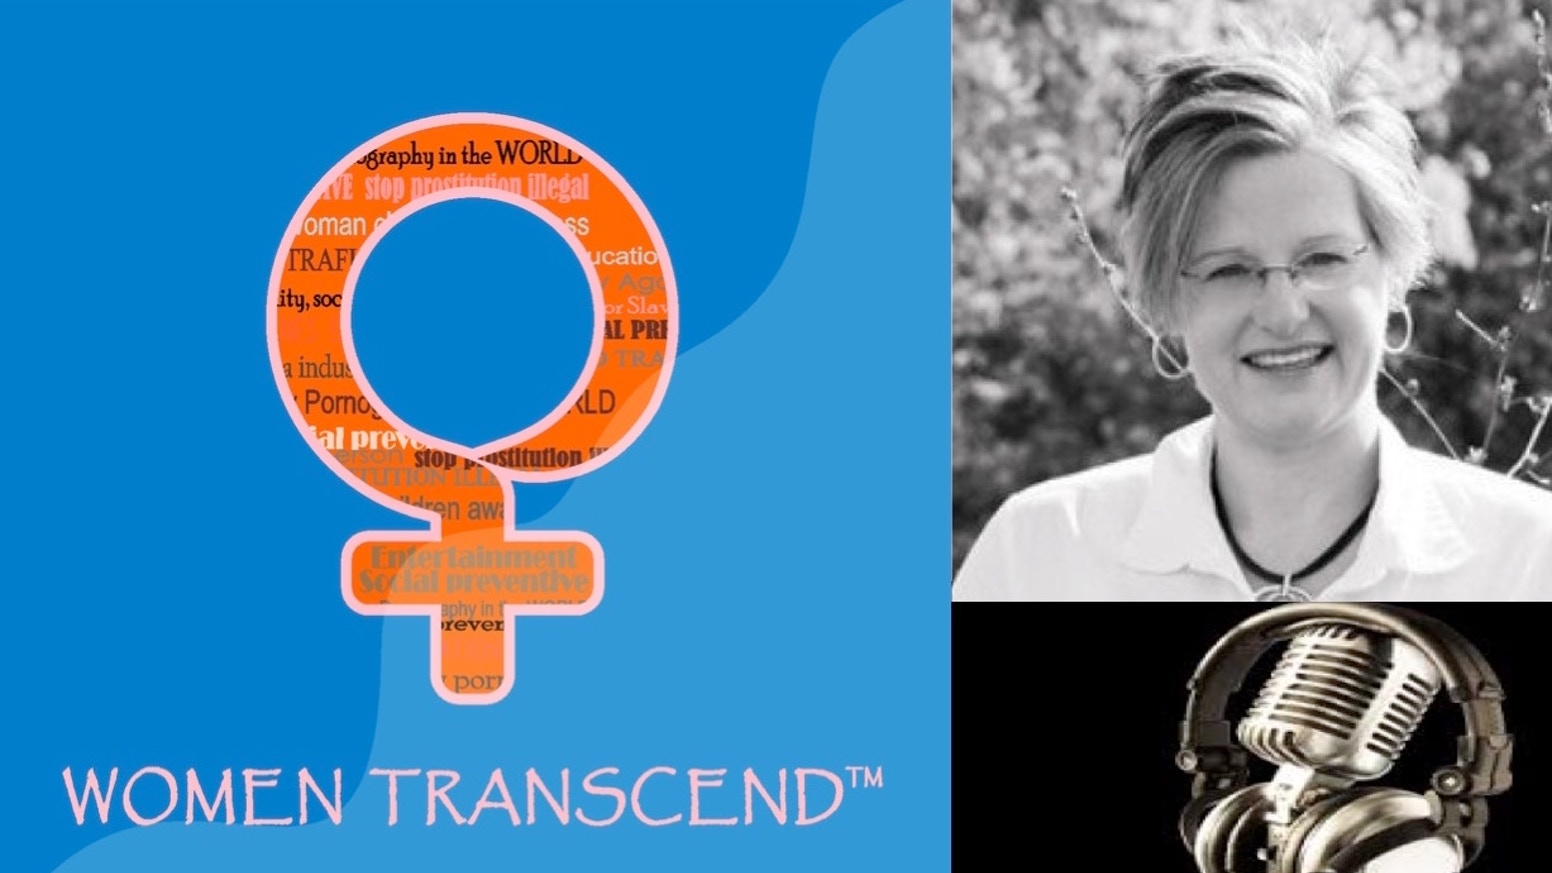 Women Transcend is a podcast covering issues and current events women care about. With the help of our backers, we will begin production of Season 2, and will start releasing new episodes next week!